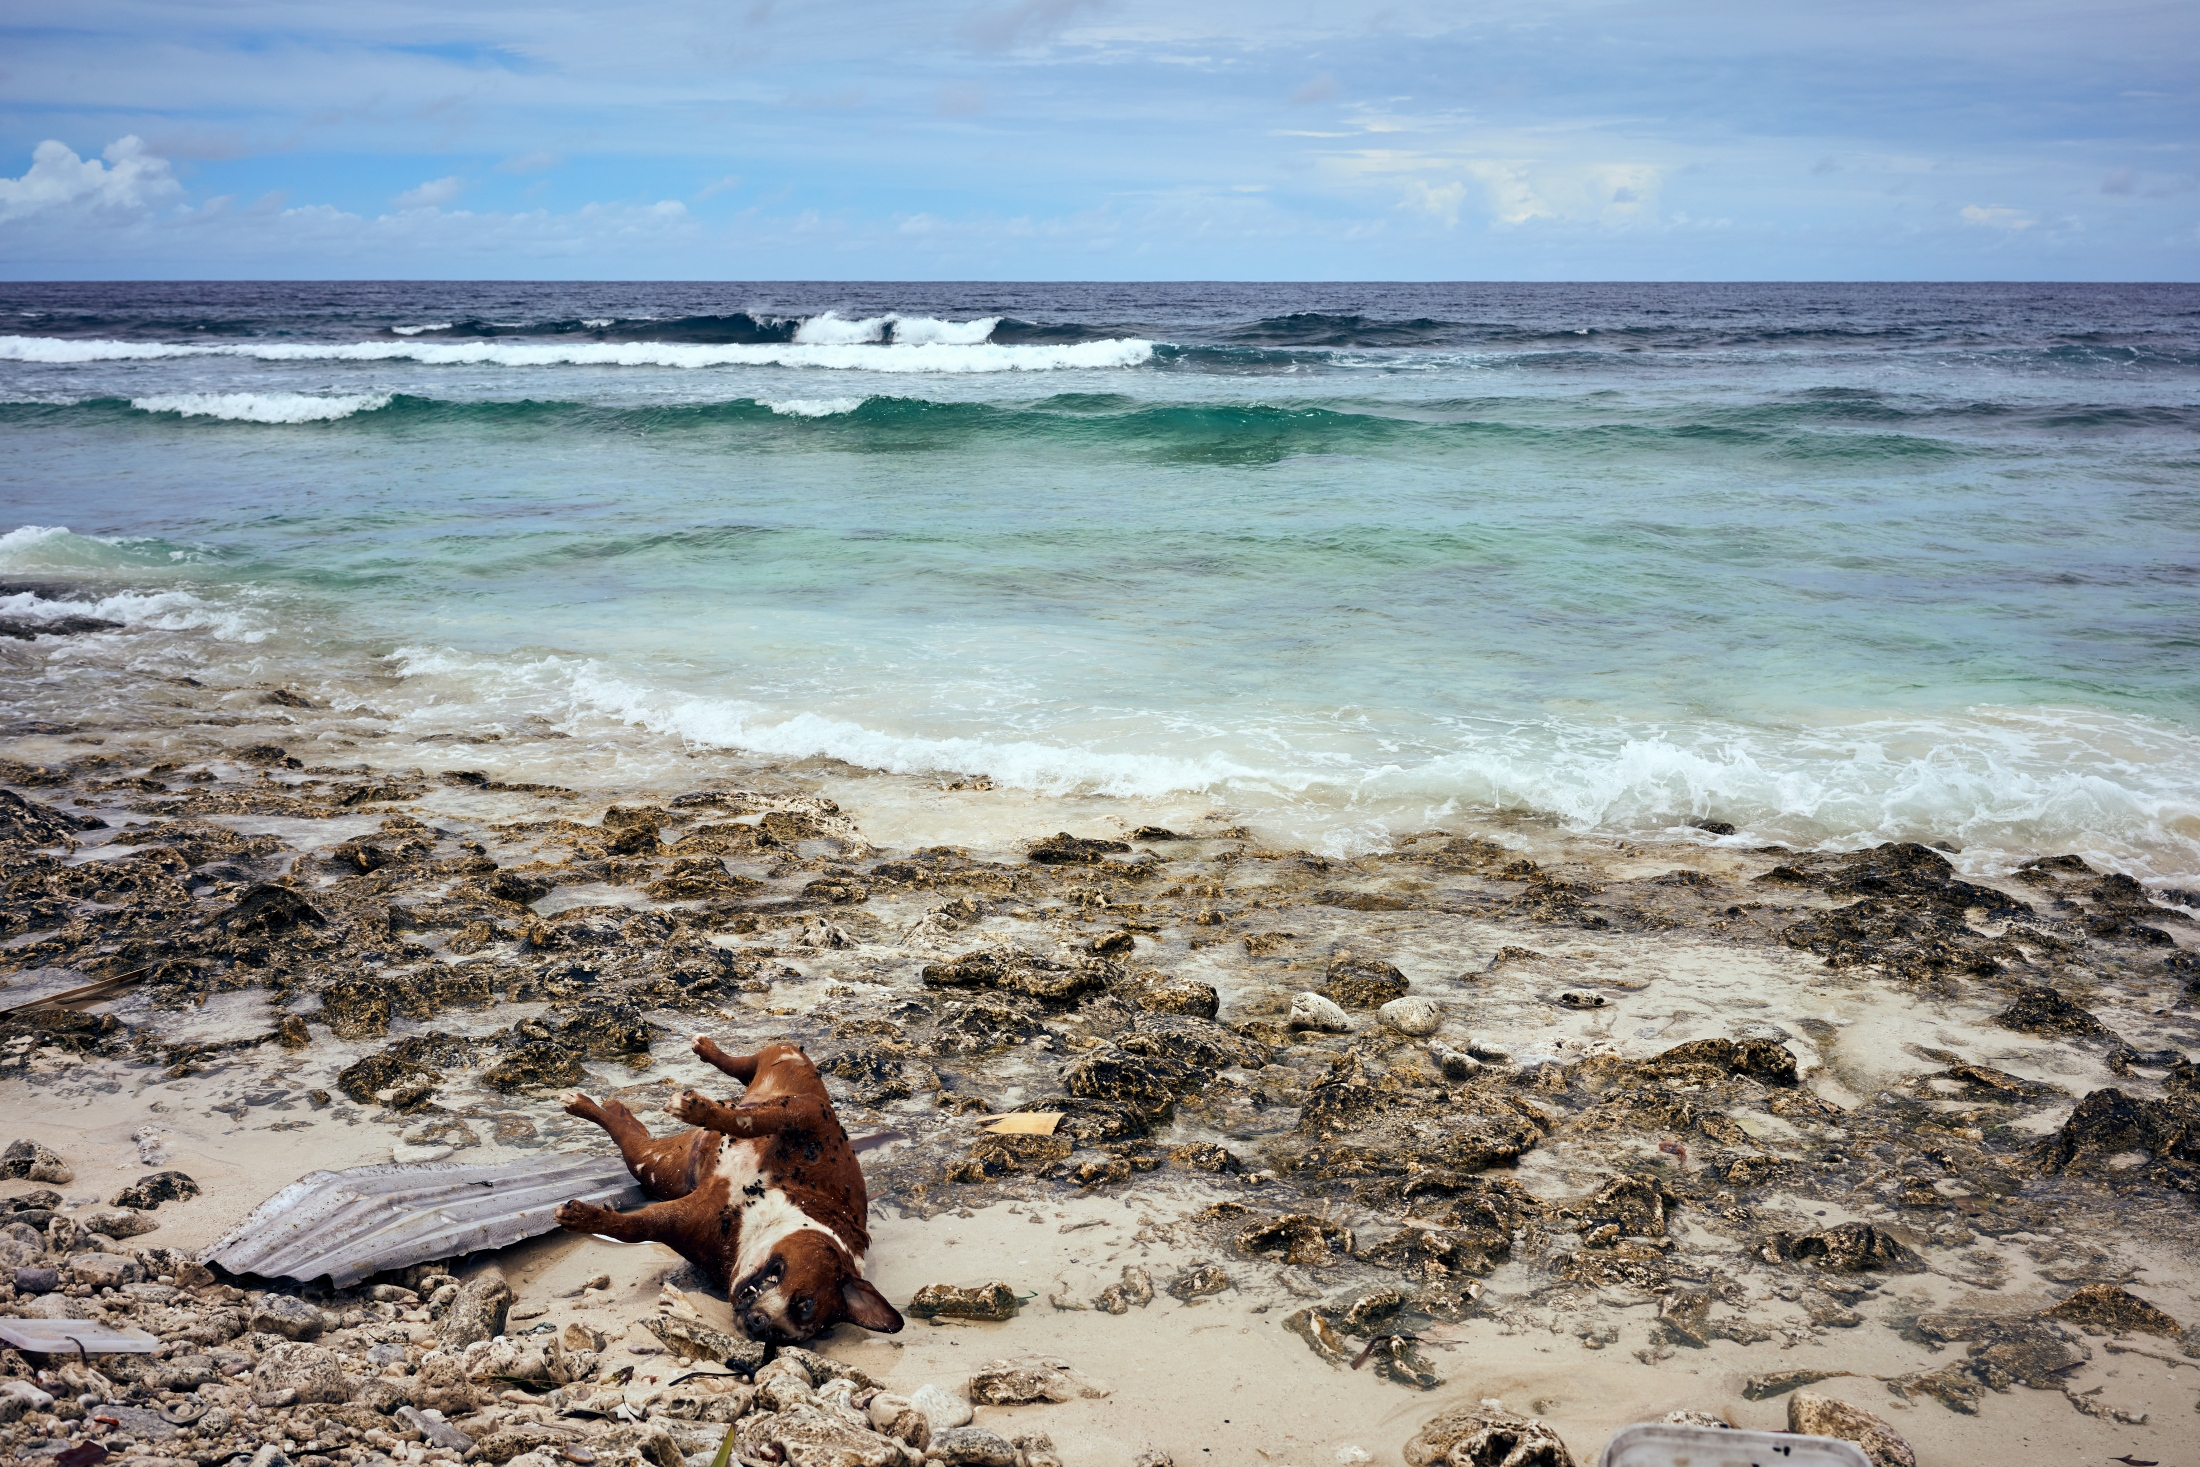 A dead dog on the shore near the end of Tuvalu's airport runway.